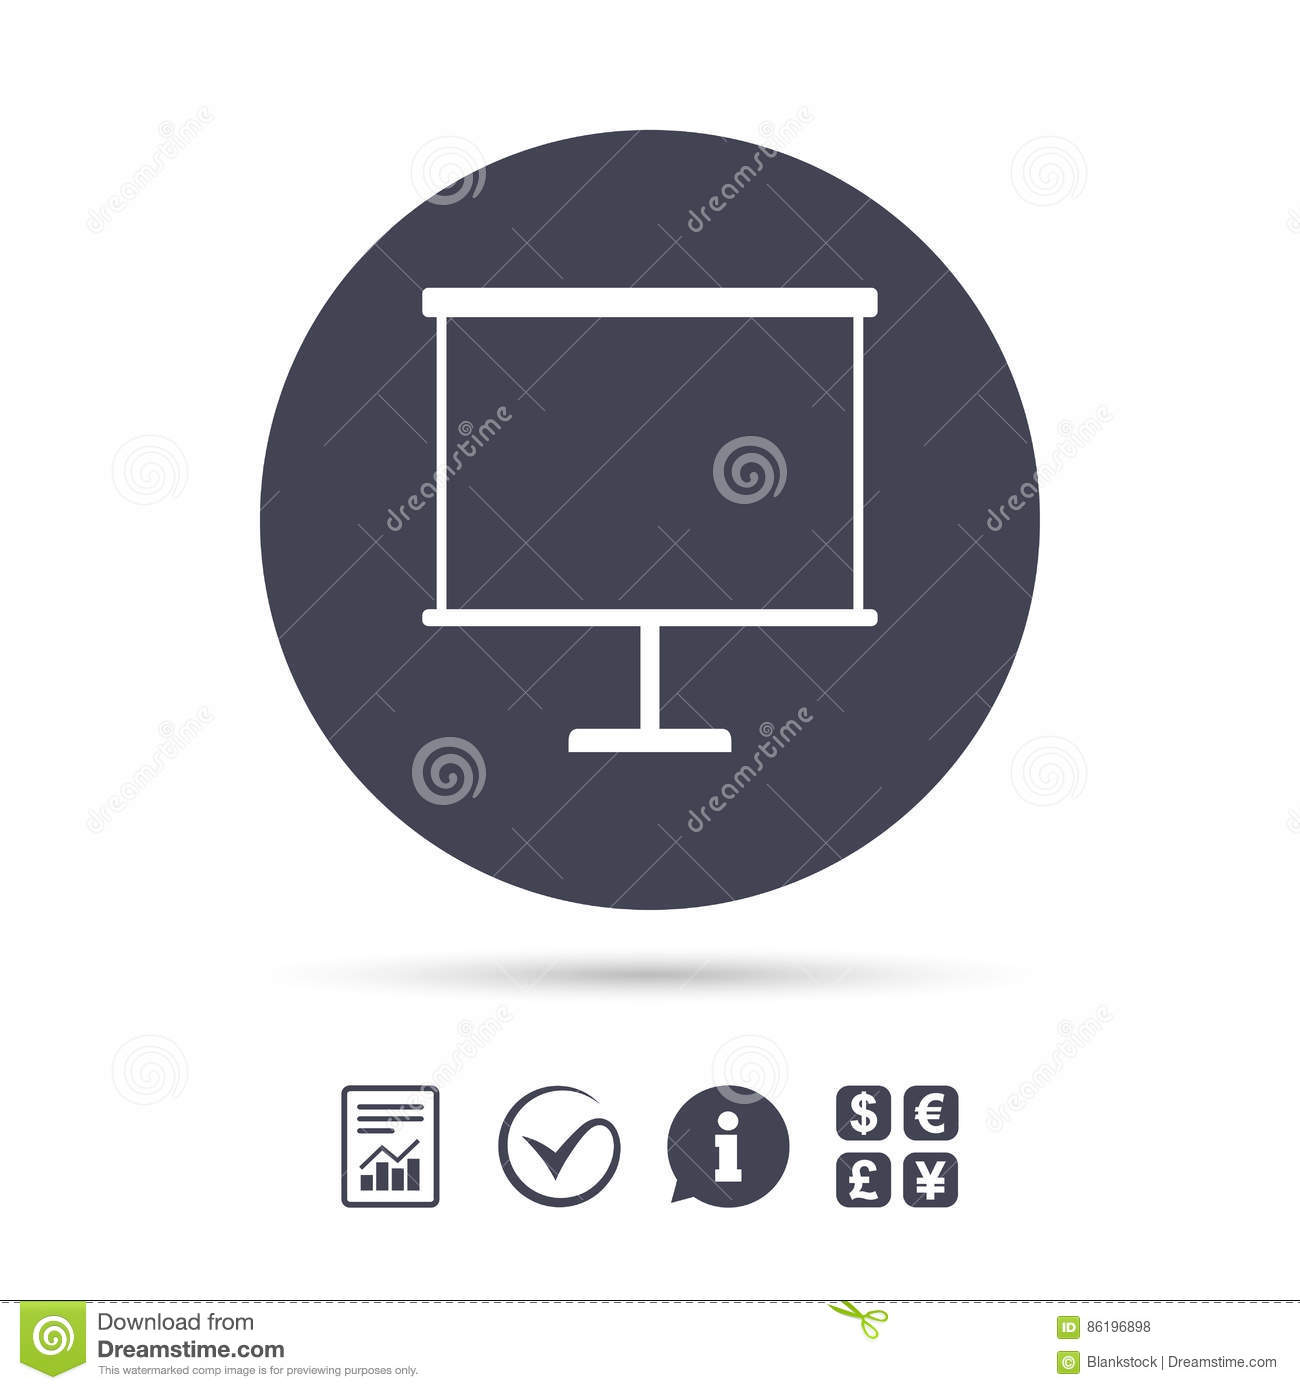 Presentation billboard sign icon ppt symbol stock vector download presentation billboard sign icon ppt symbol stock vector illustration of badge ccuart Image collections